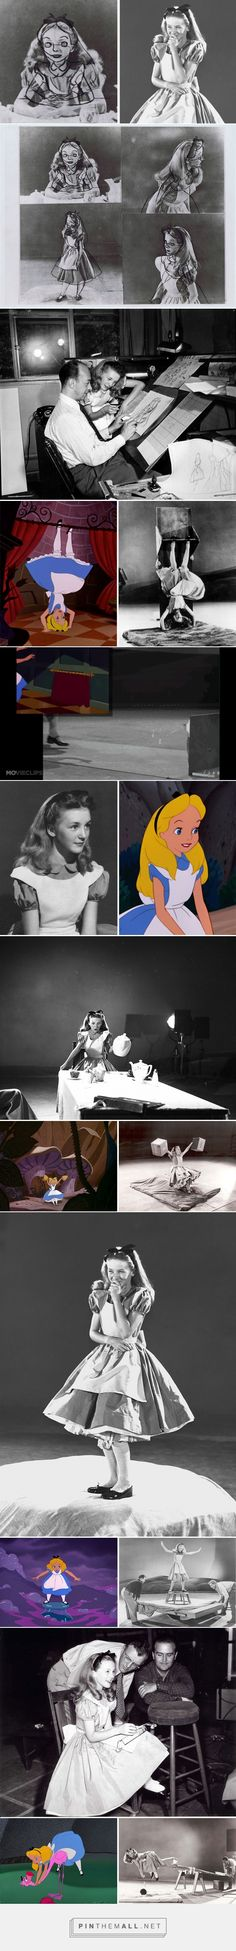 Old Photos Reveal How Disney's Animators Used A Real-Life Model To Draw Alice In Wonderland Disney Marvel, Disney Pixar, Disney And Dreamworks, Disney Magic, Walt Disney, Disney Fun Facts, Disney Jokes, Funny Disney Memes, Cute Disney